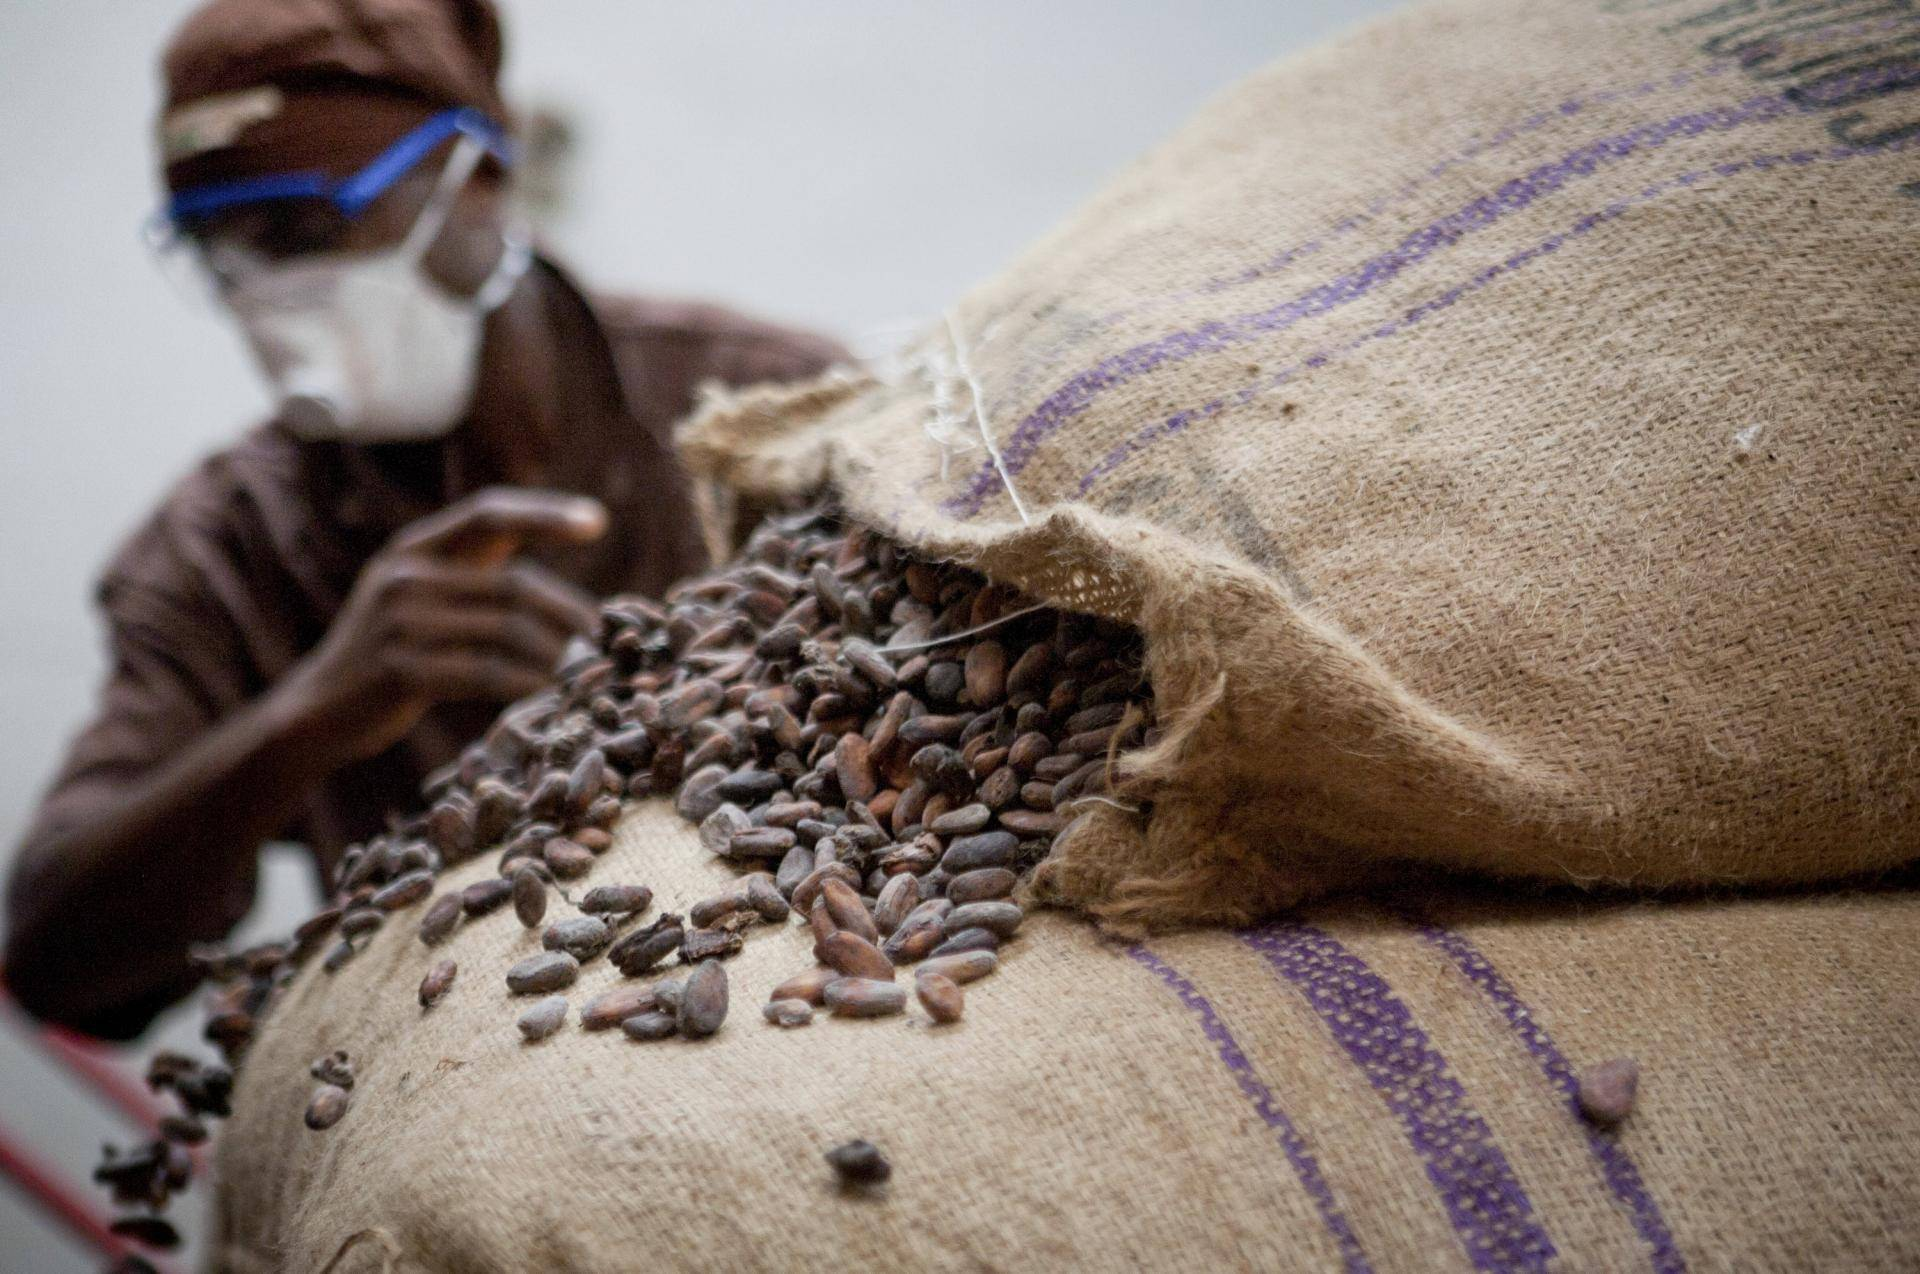 Cocoa sourcing and processing in Africa during times of COVID-19